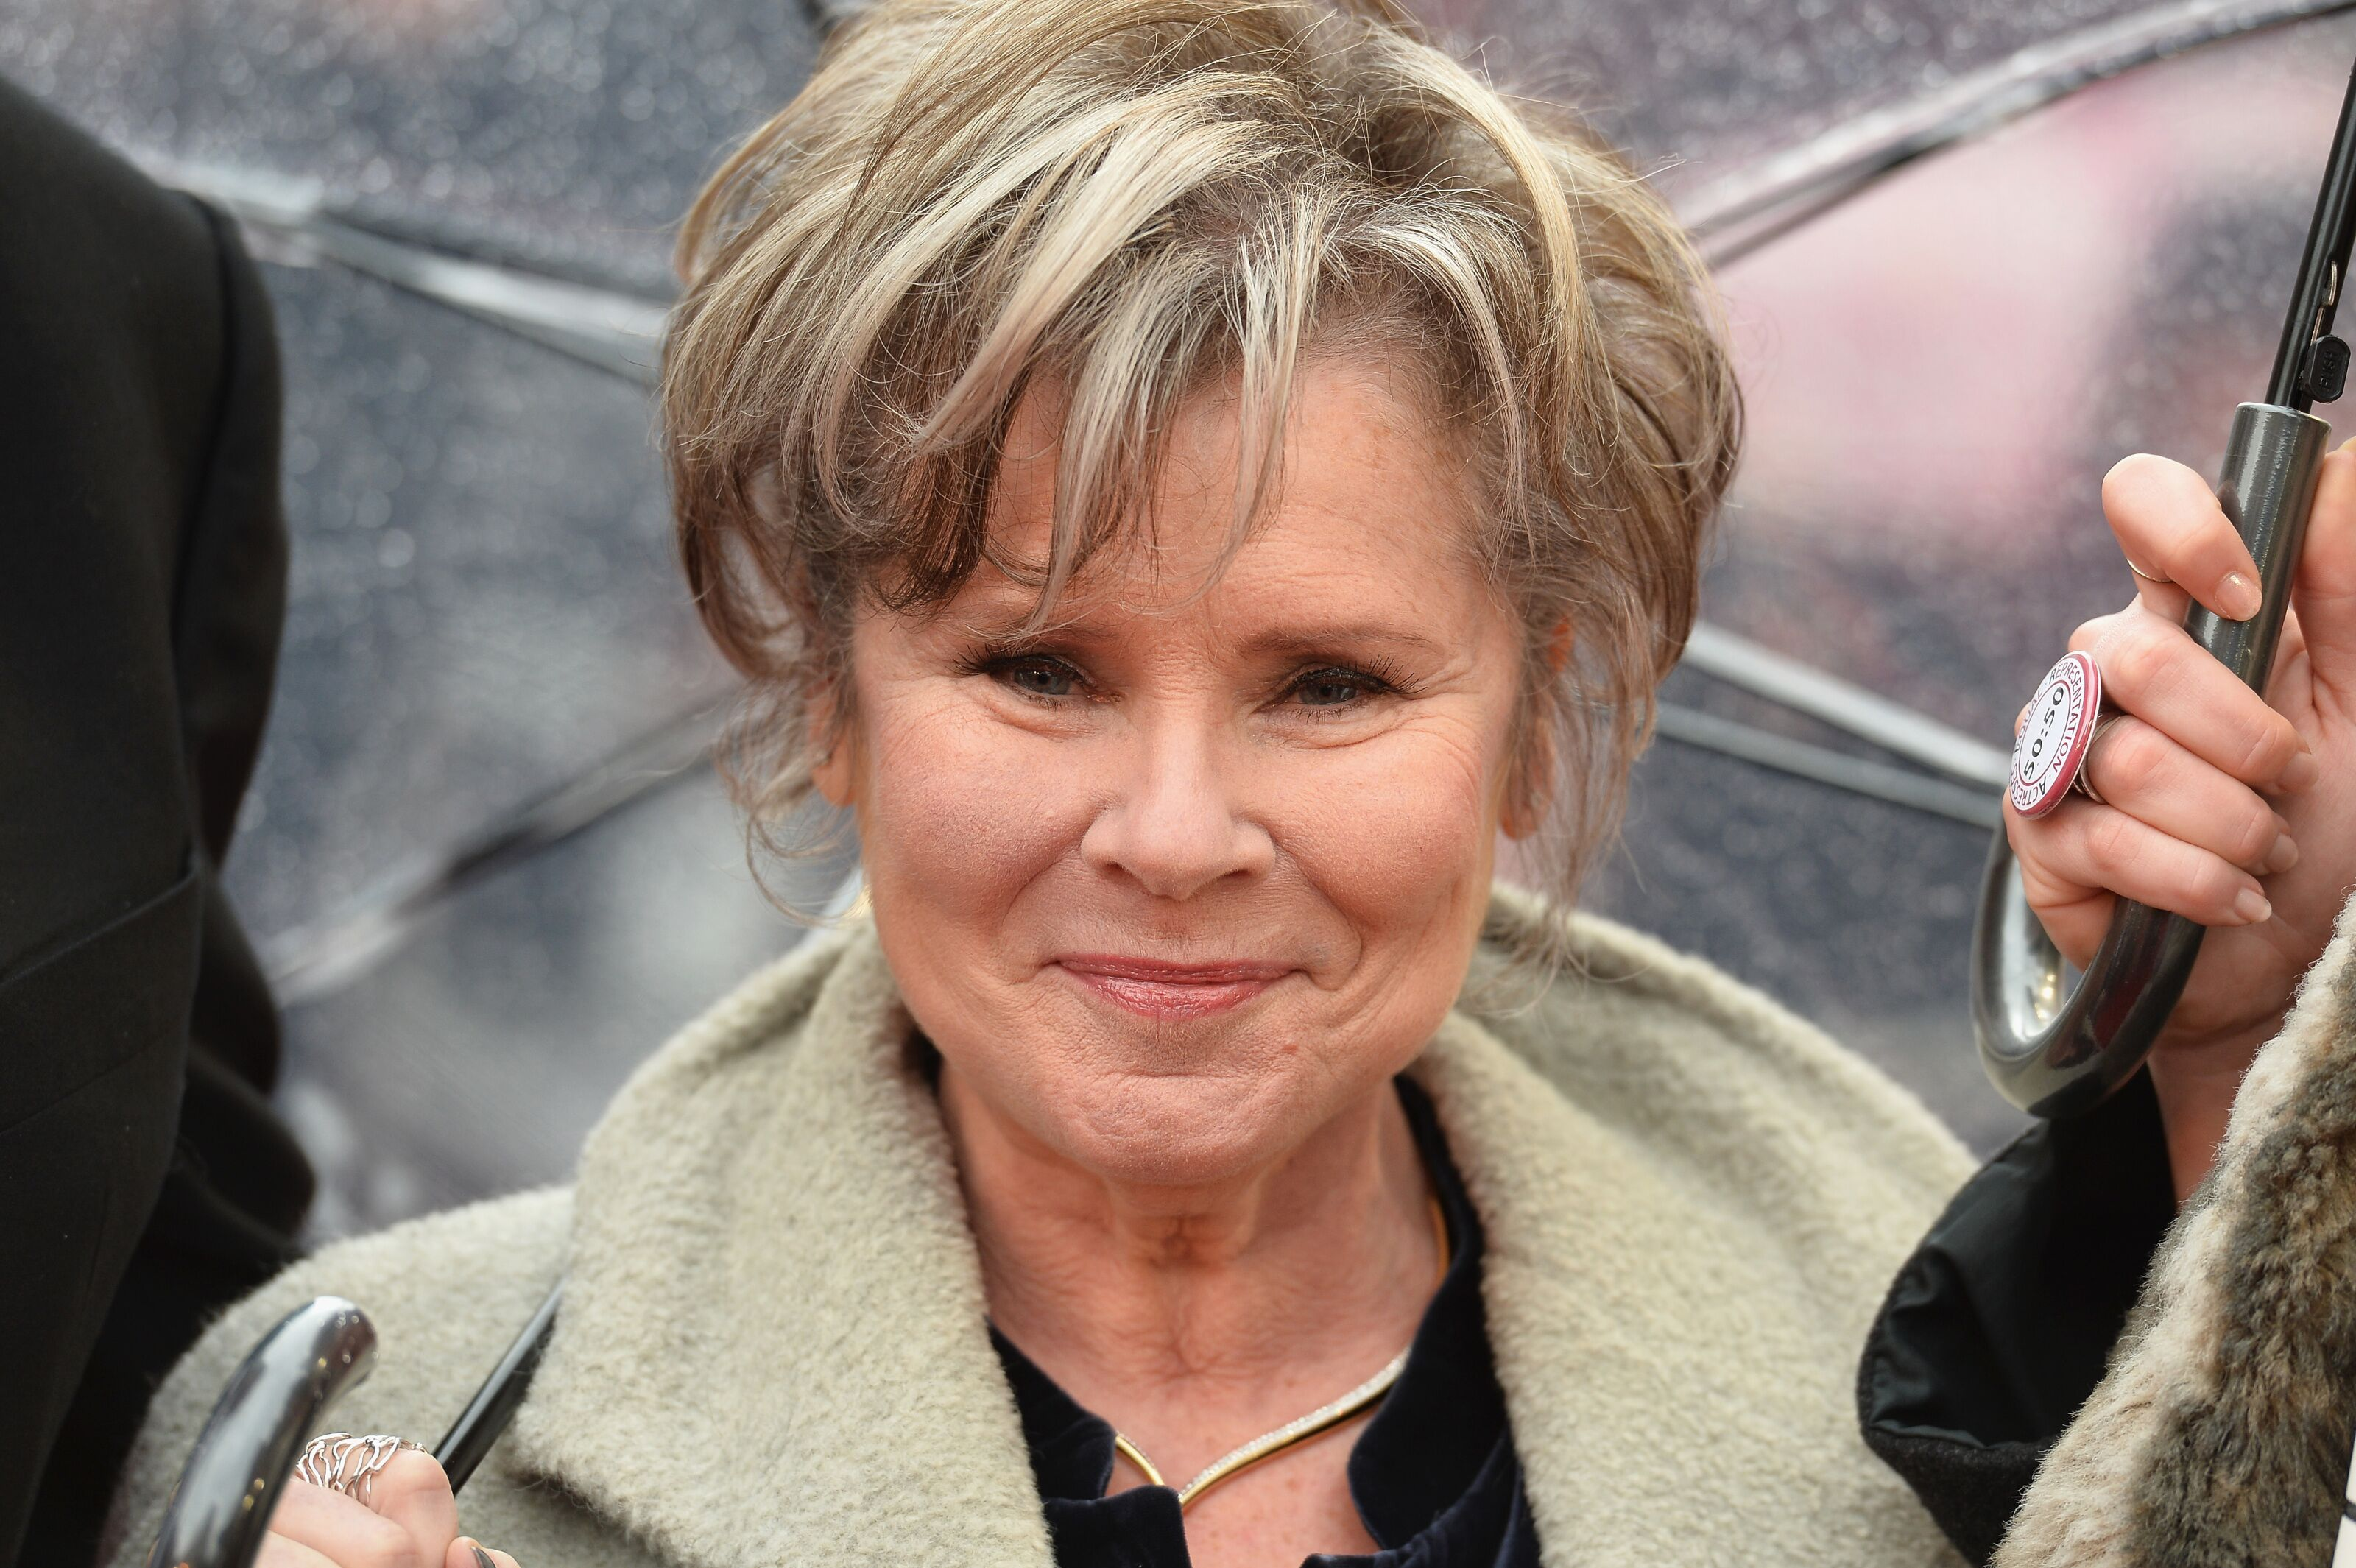 The Crown: Imelda Staunton not confirmed as next Queen Elizabeth II (yet)